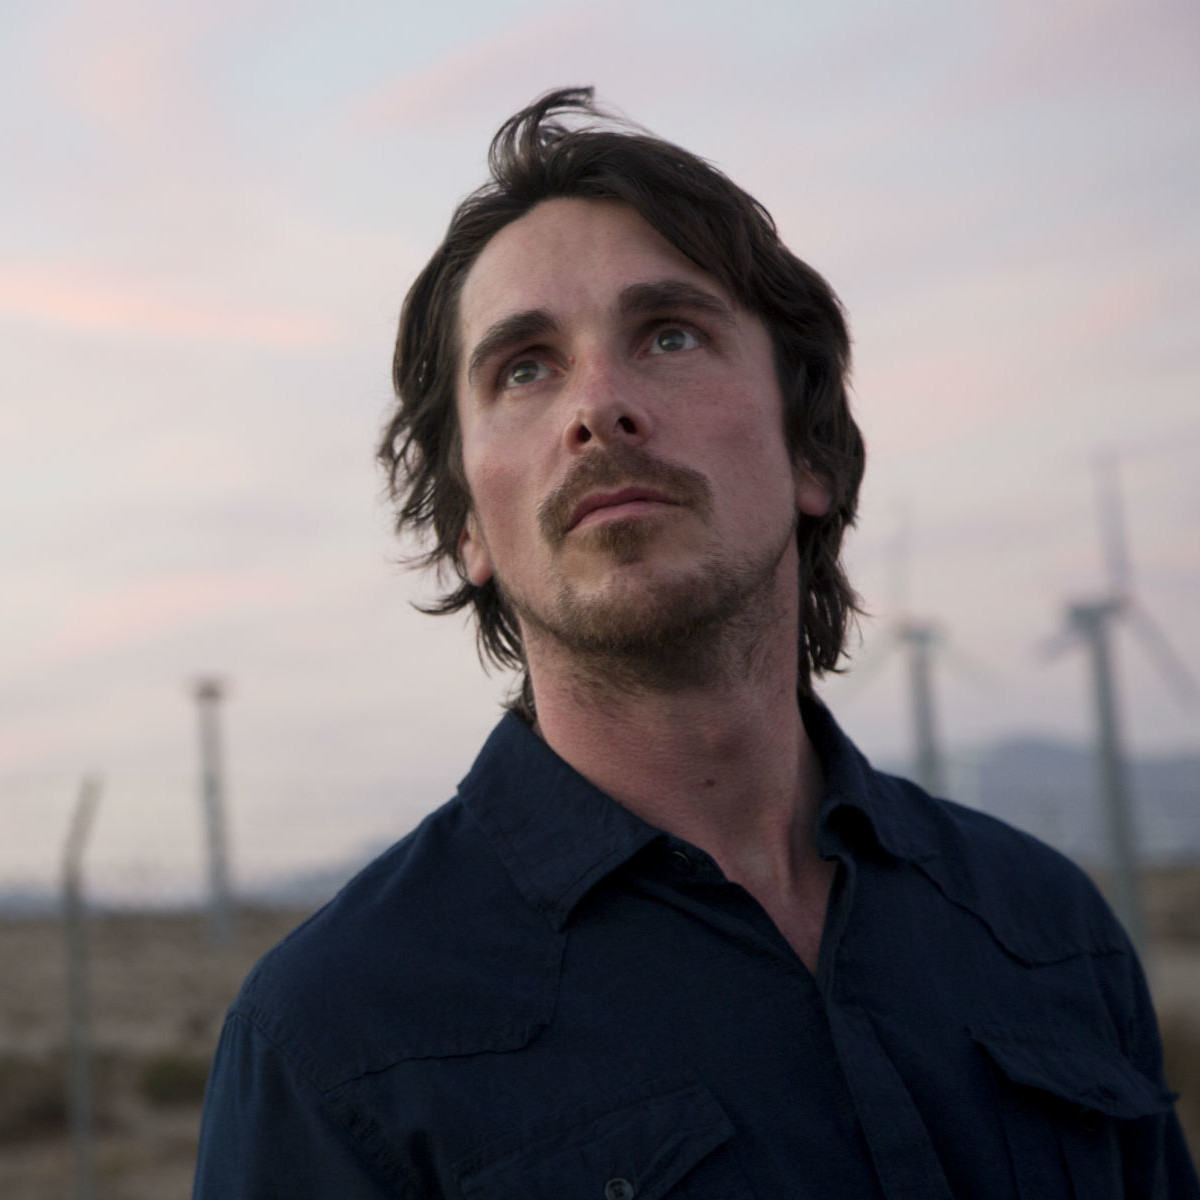 Christian Bale in Knight of Cups